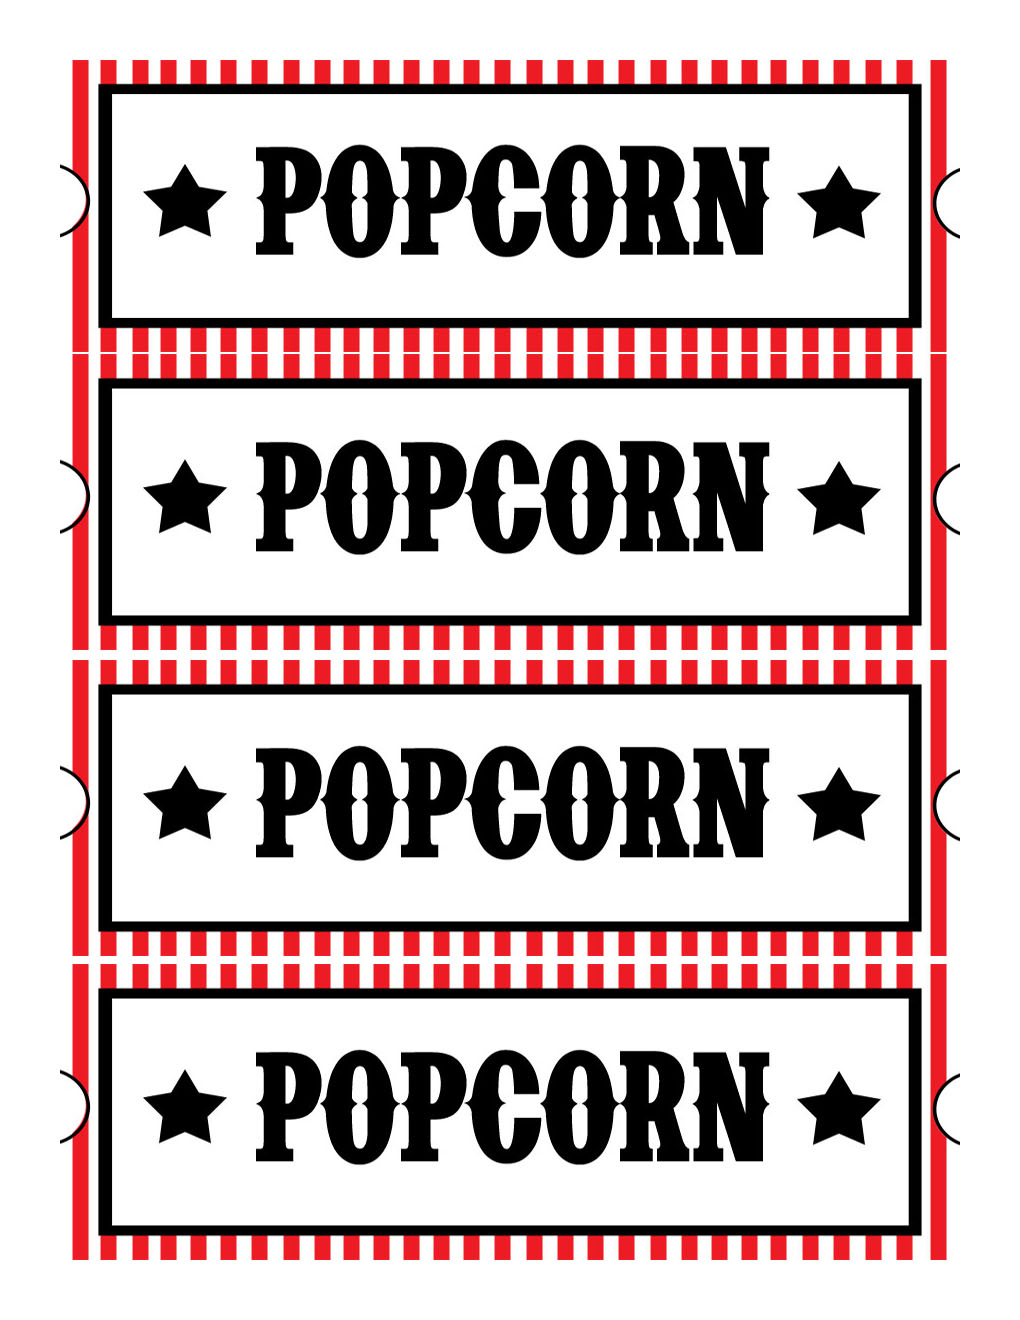 Printable Movie Ticket Clipart - Clipart Kid